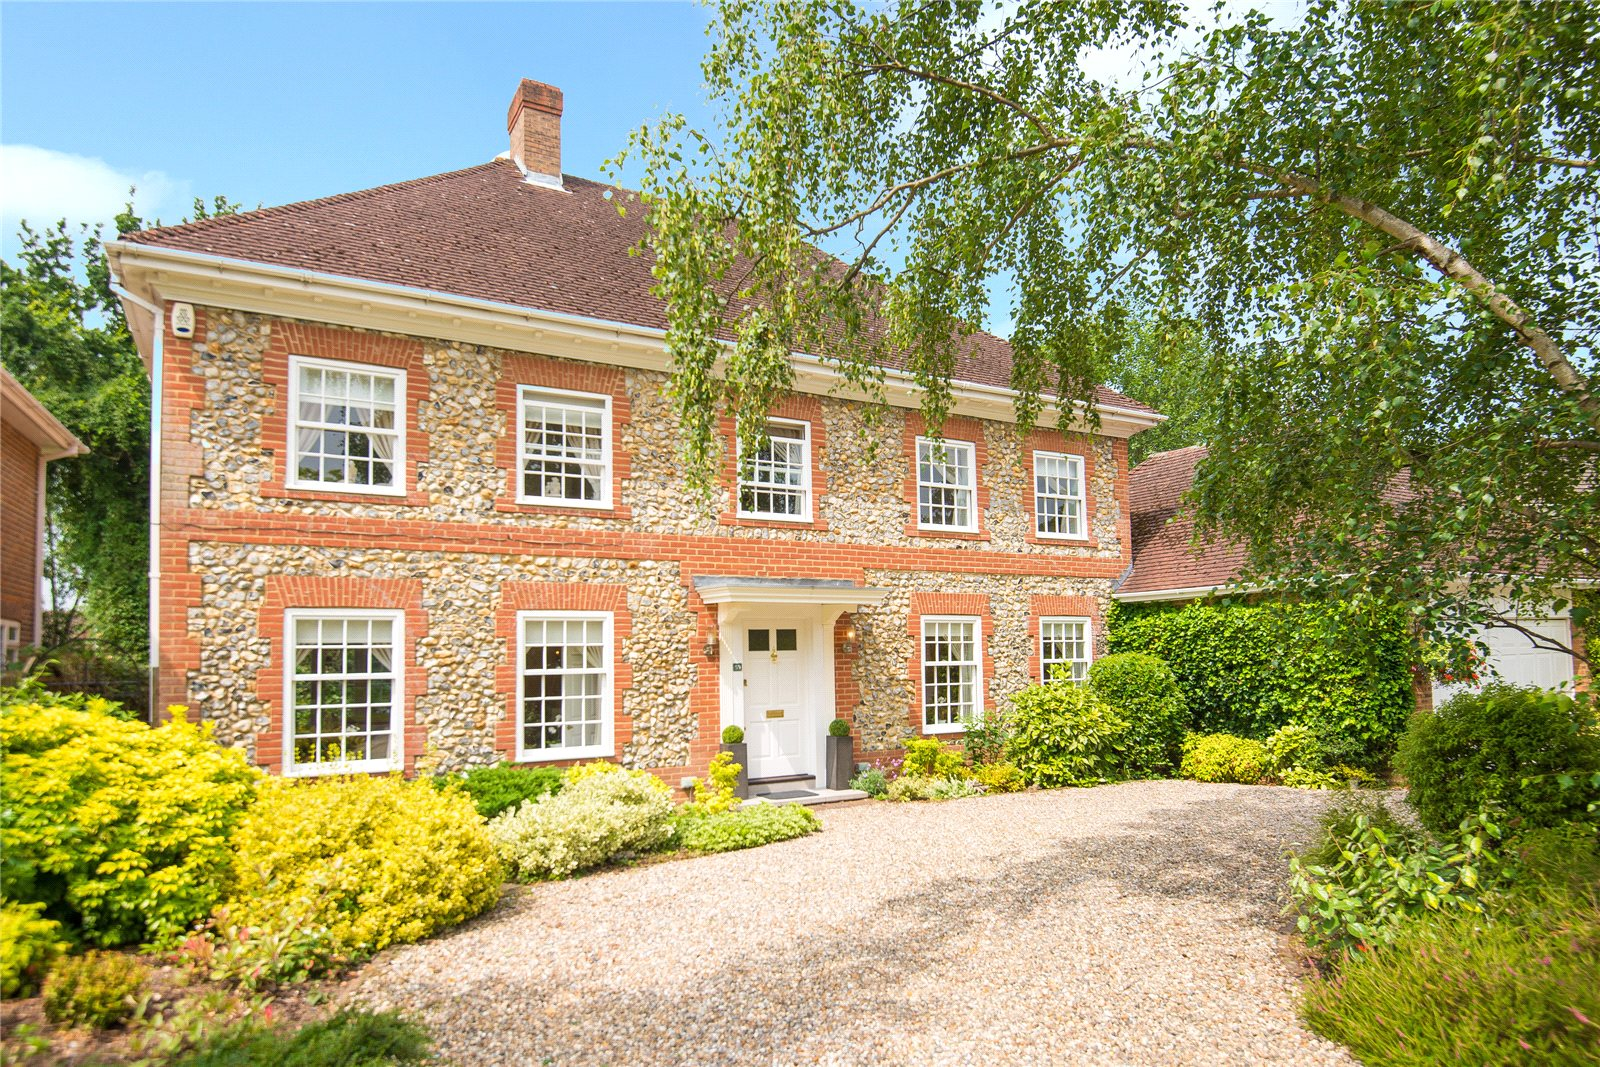 Single Family Home for Sale at St Huberts Close, Gerrards Cross, Buckinghamshire, SL9 Gerrards Cross, England